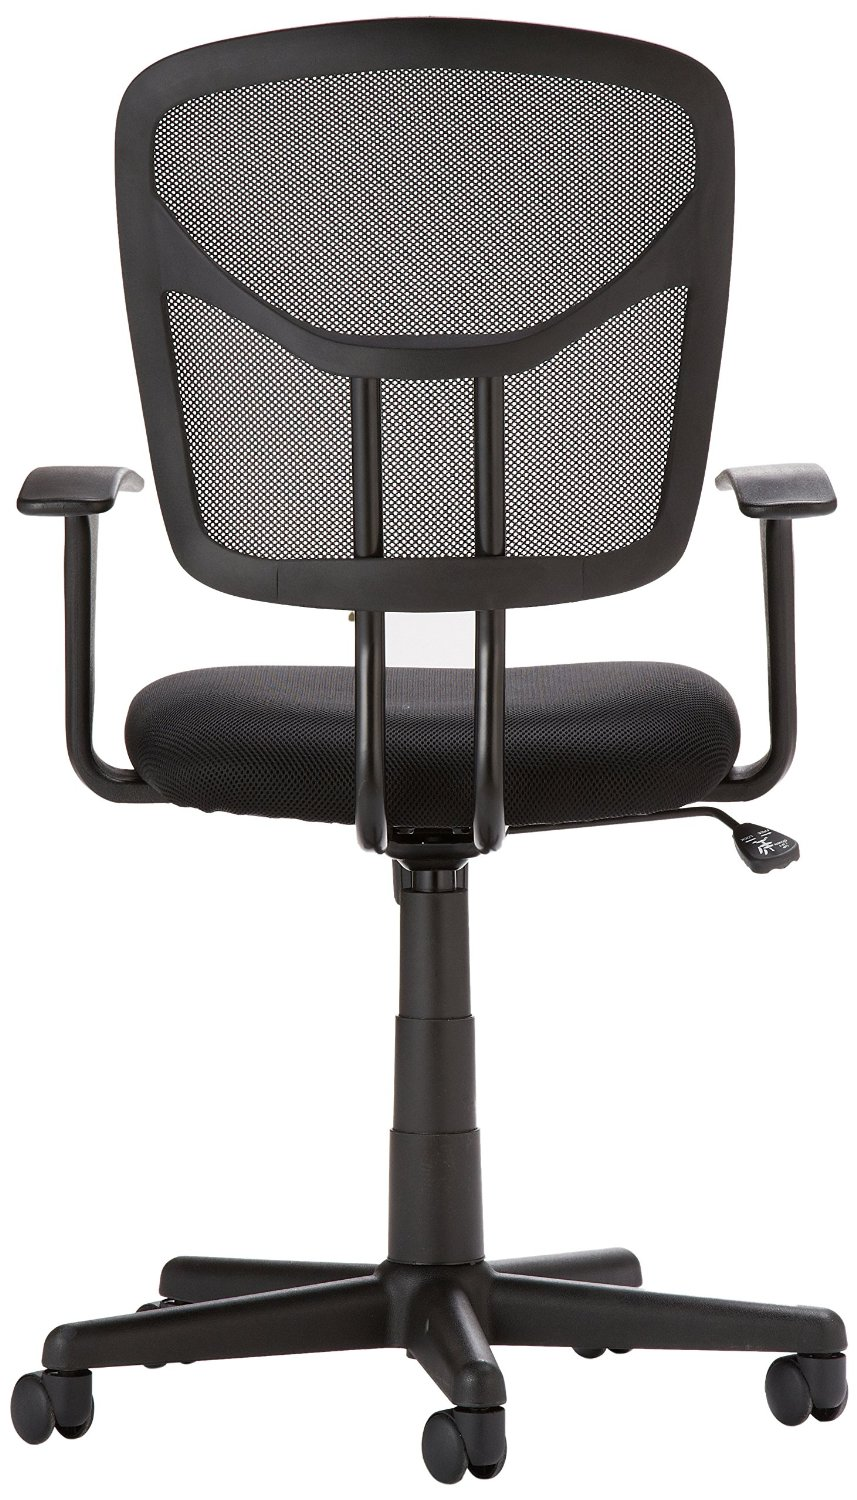 MidBack Mesh Chair Best Offer Reviews